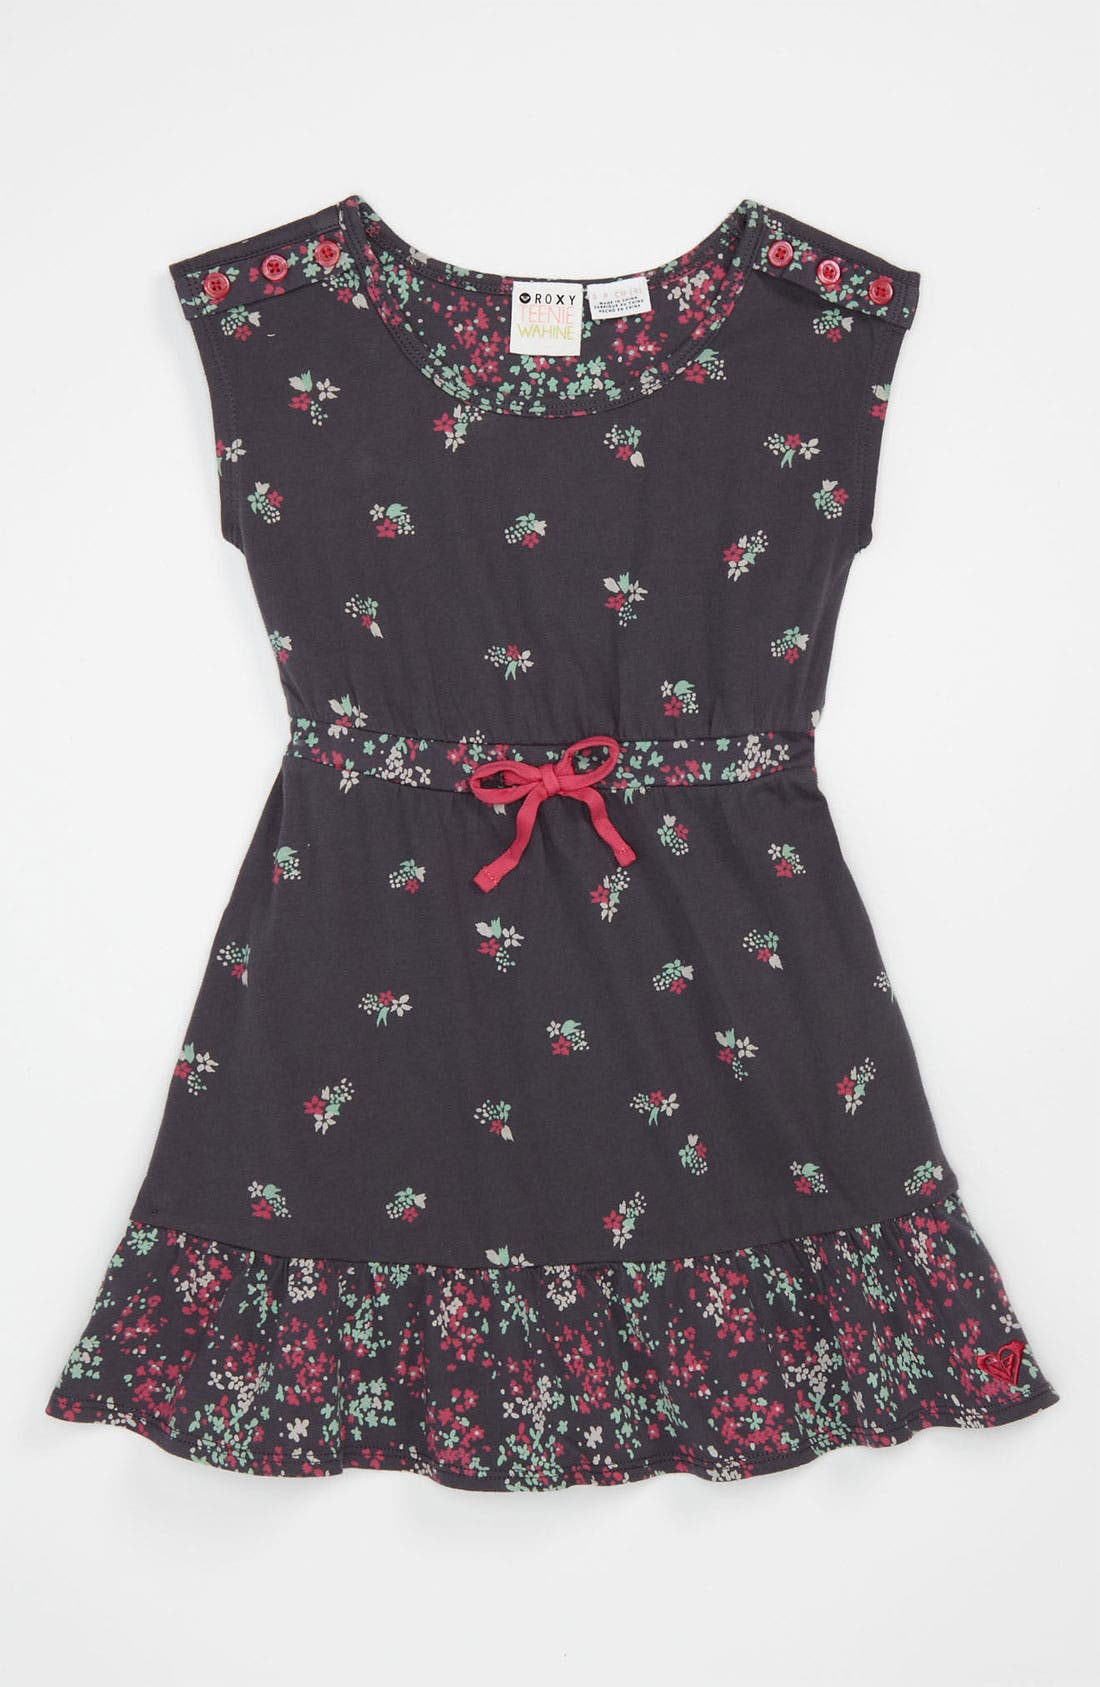 Alternate Image 1 Selected - Roxy 'Tinsel' Floral Dress (Little Girls)